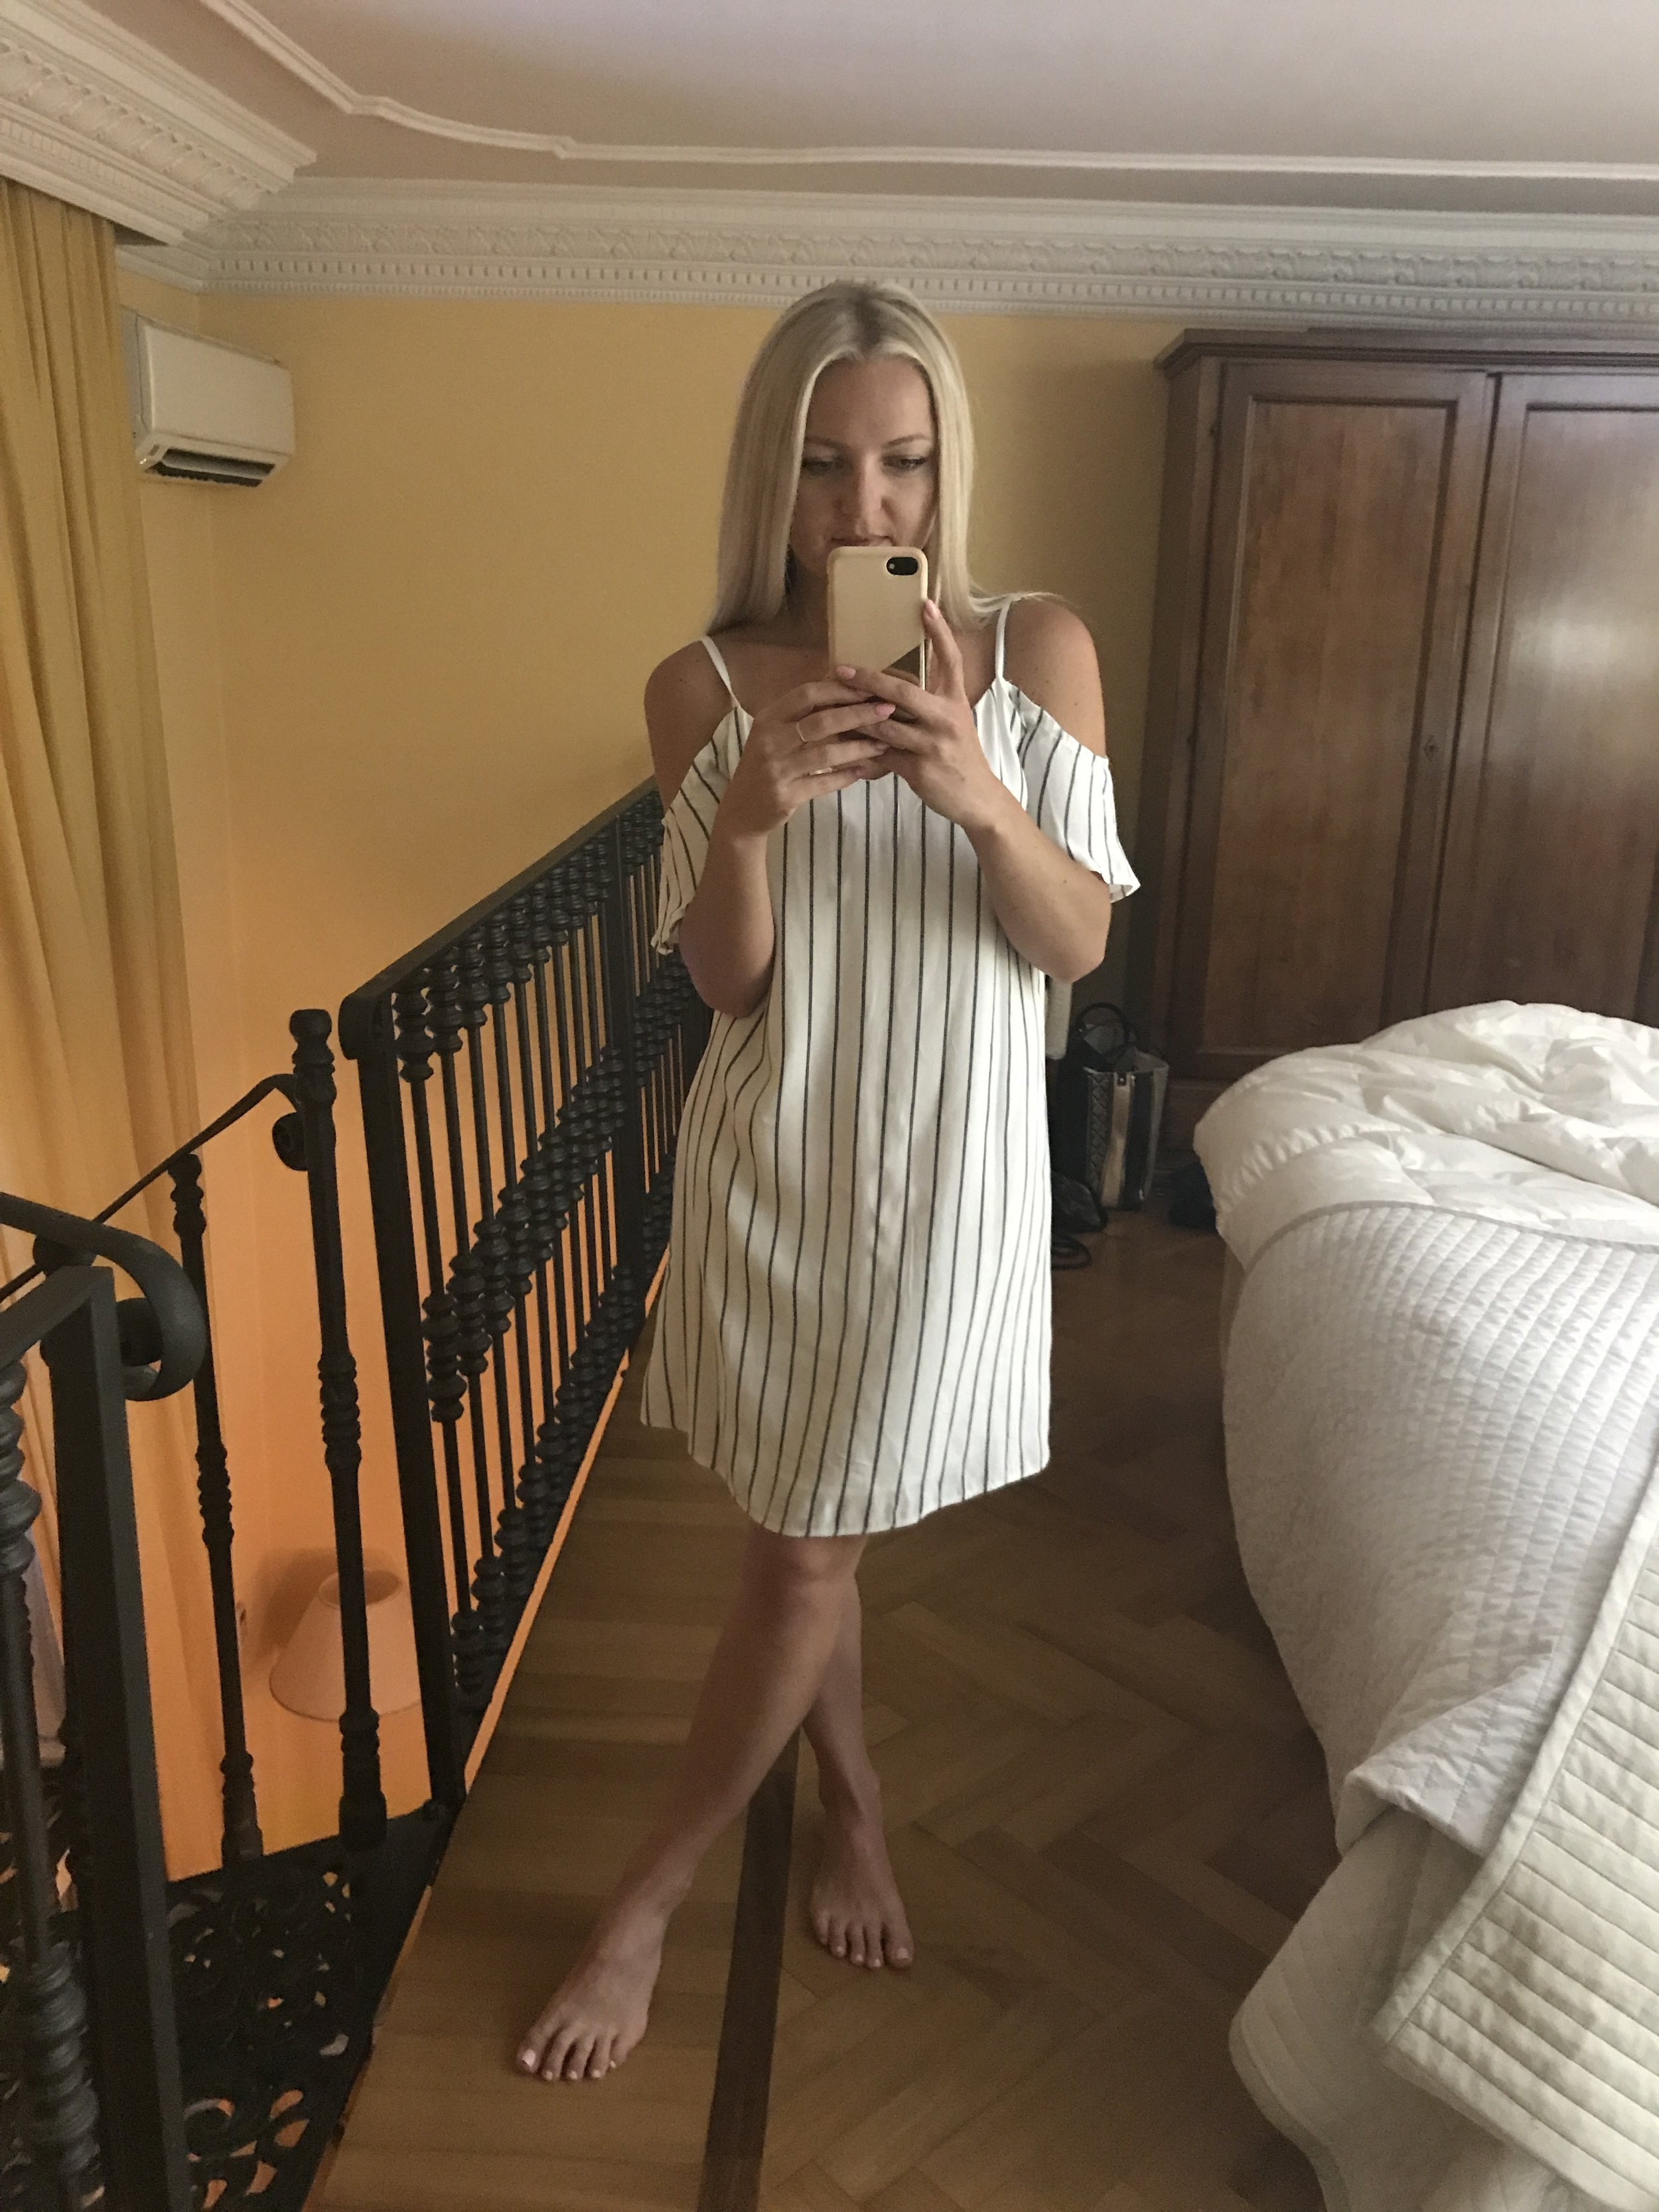 This is the dress I bought in Milan. Selfie was taken in our Milan Airbnb, which was SO cute!